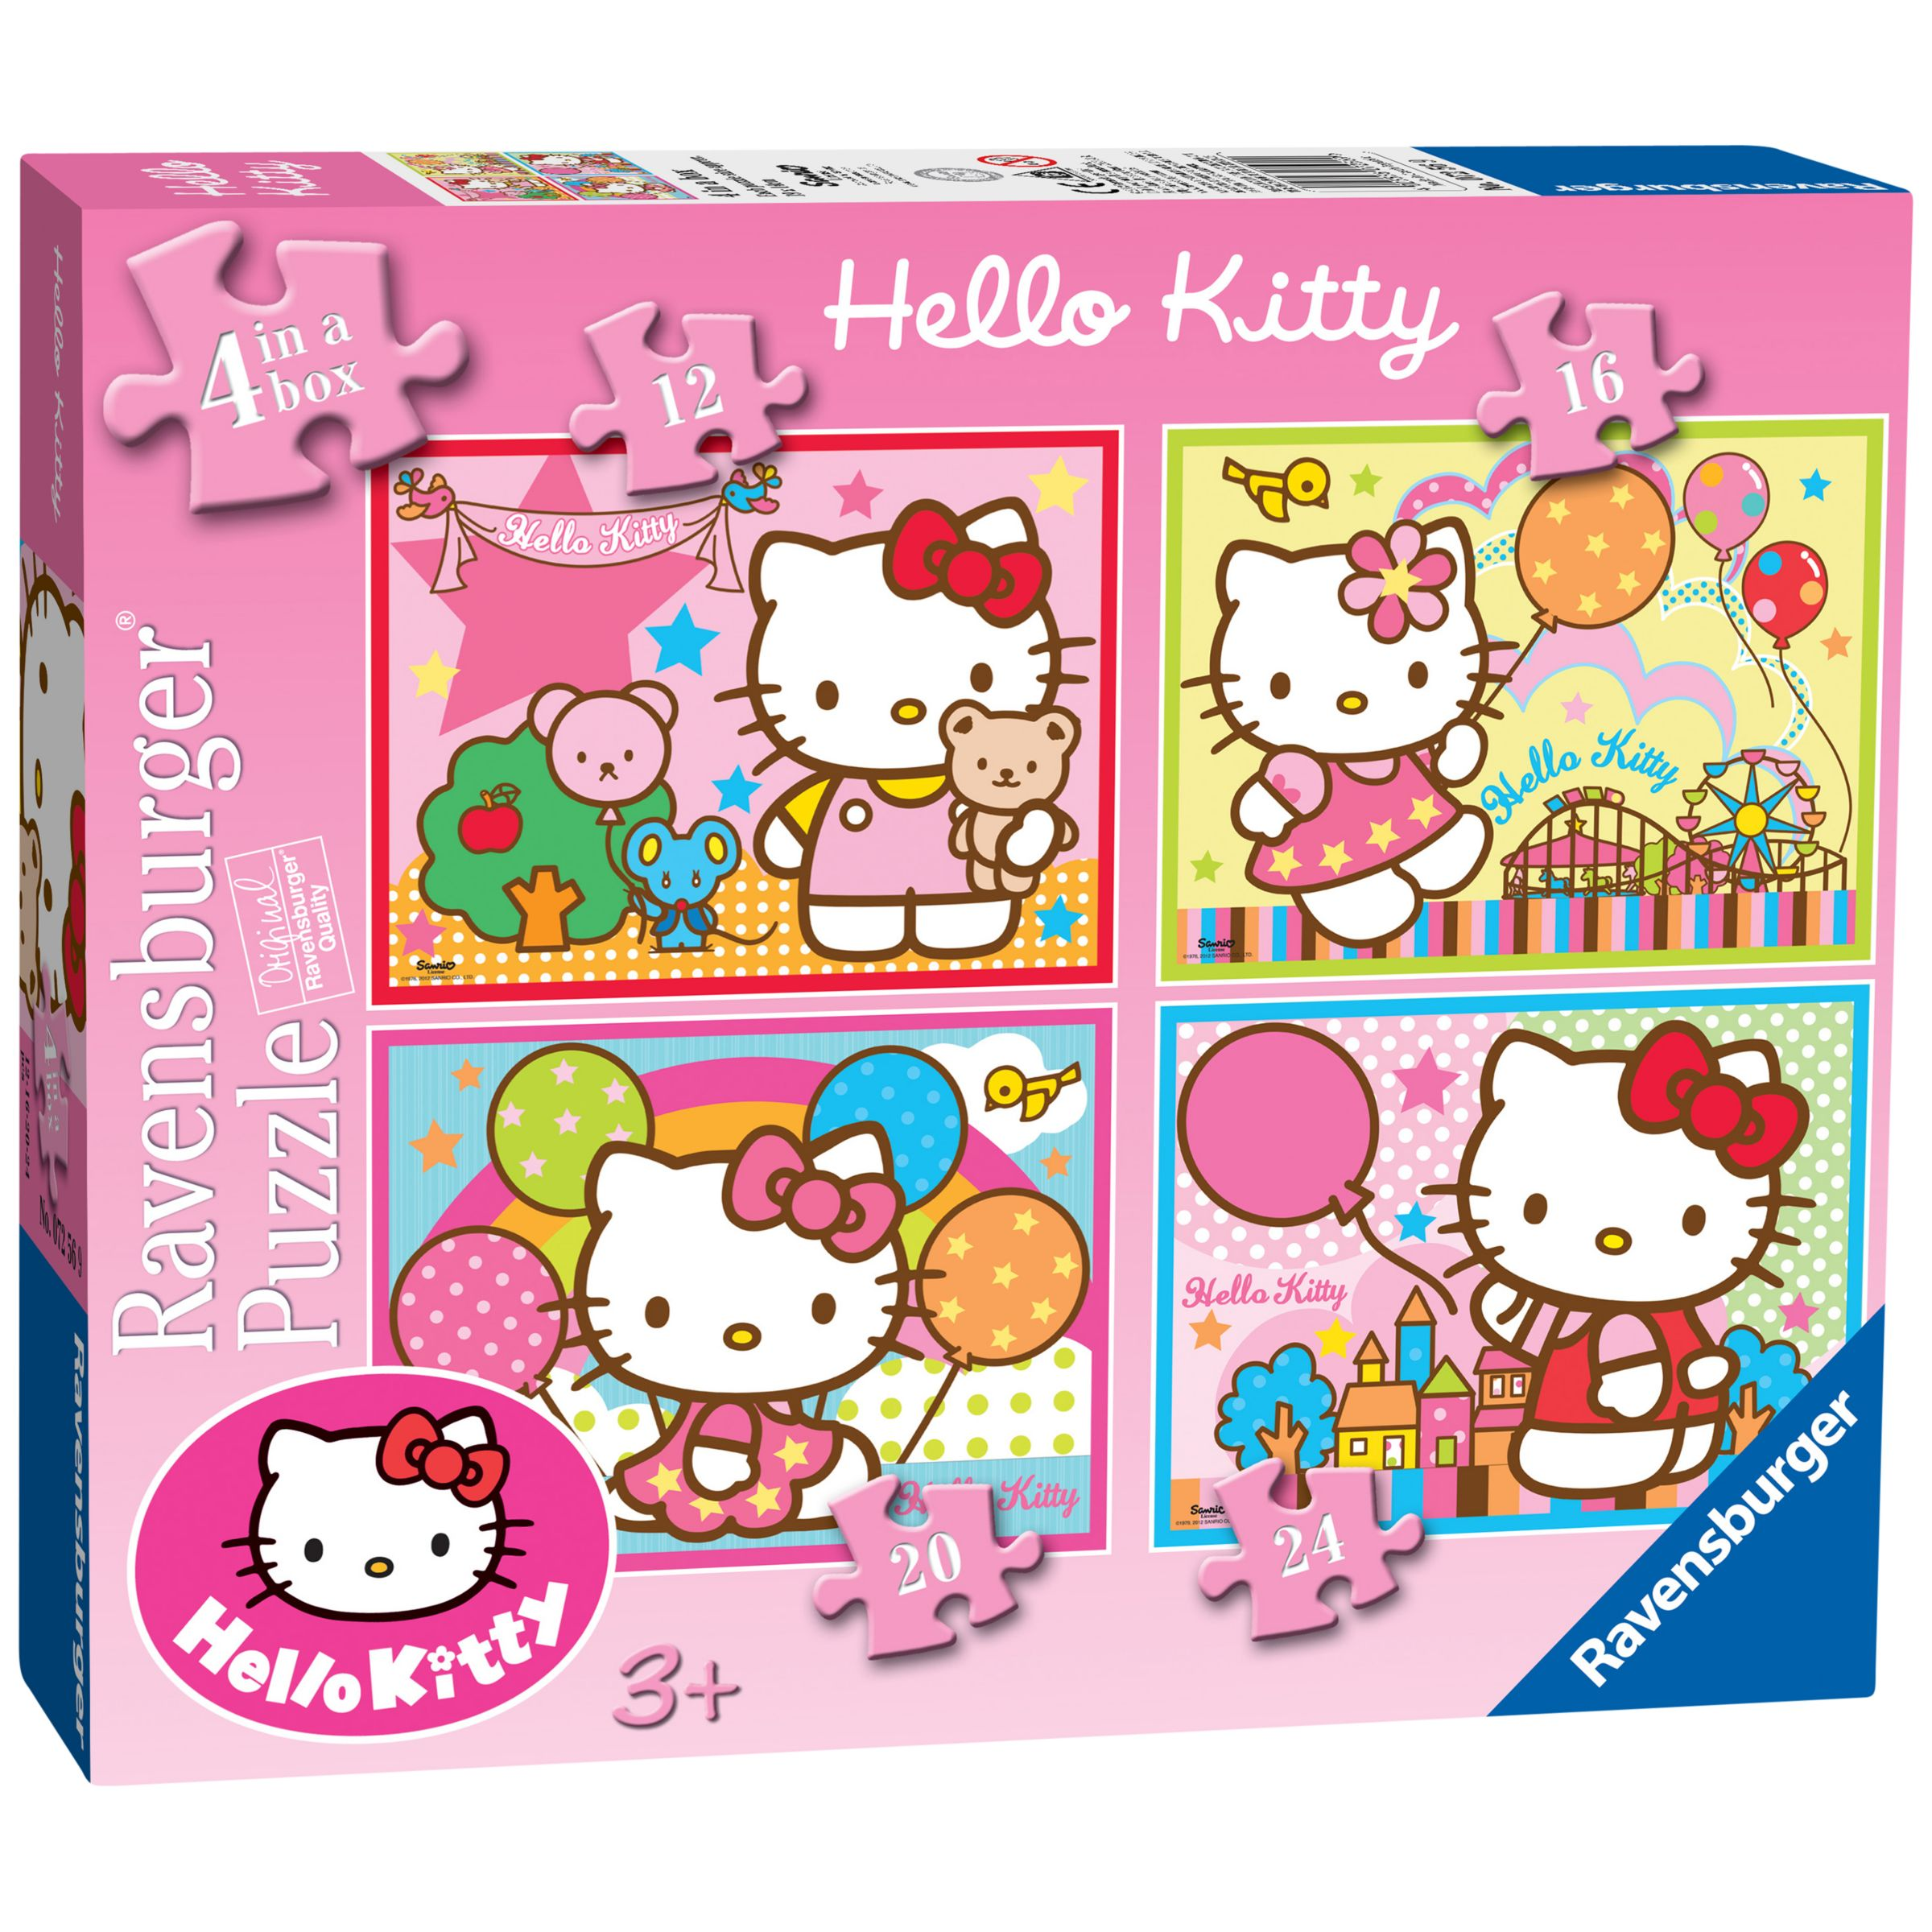 Hello Kitty 4 In A Box Puzzle